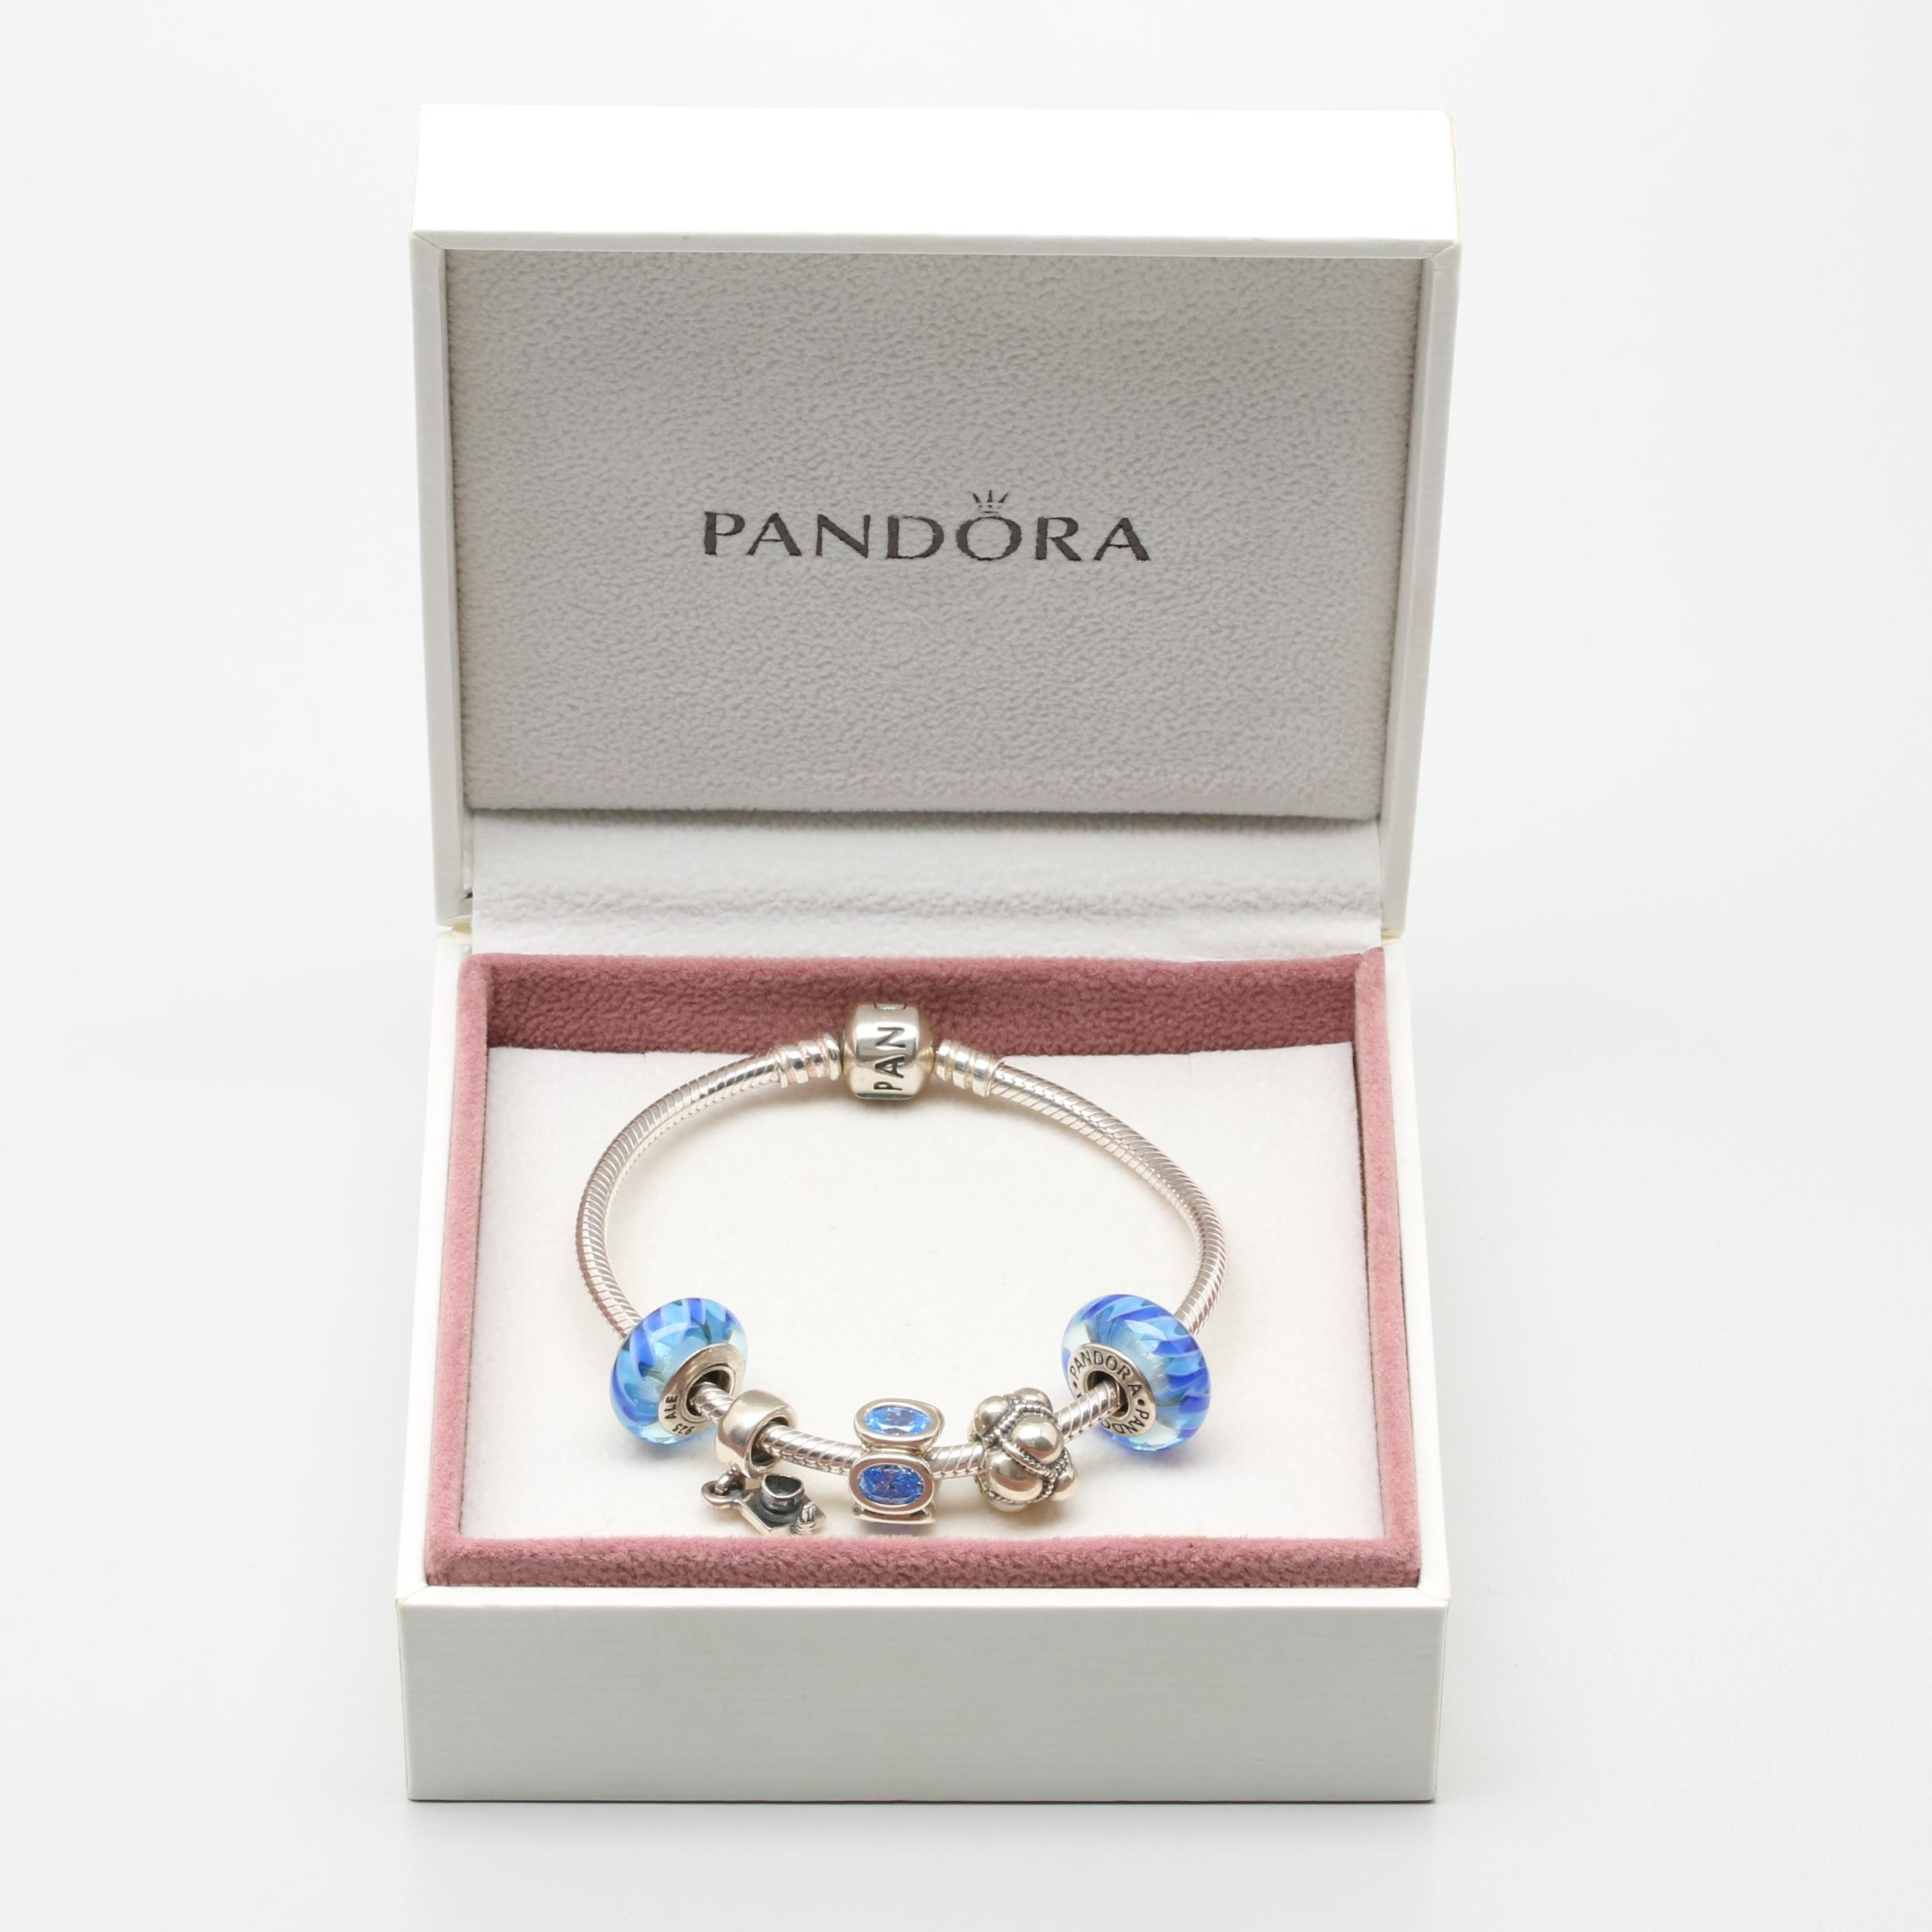 Pandora Sterling Silver Cubic Zirconia and Glass Charm Bracelet with Box